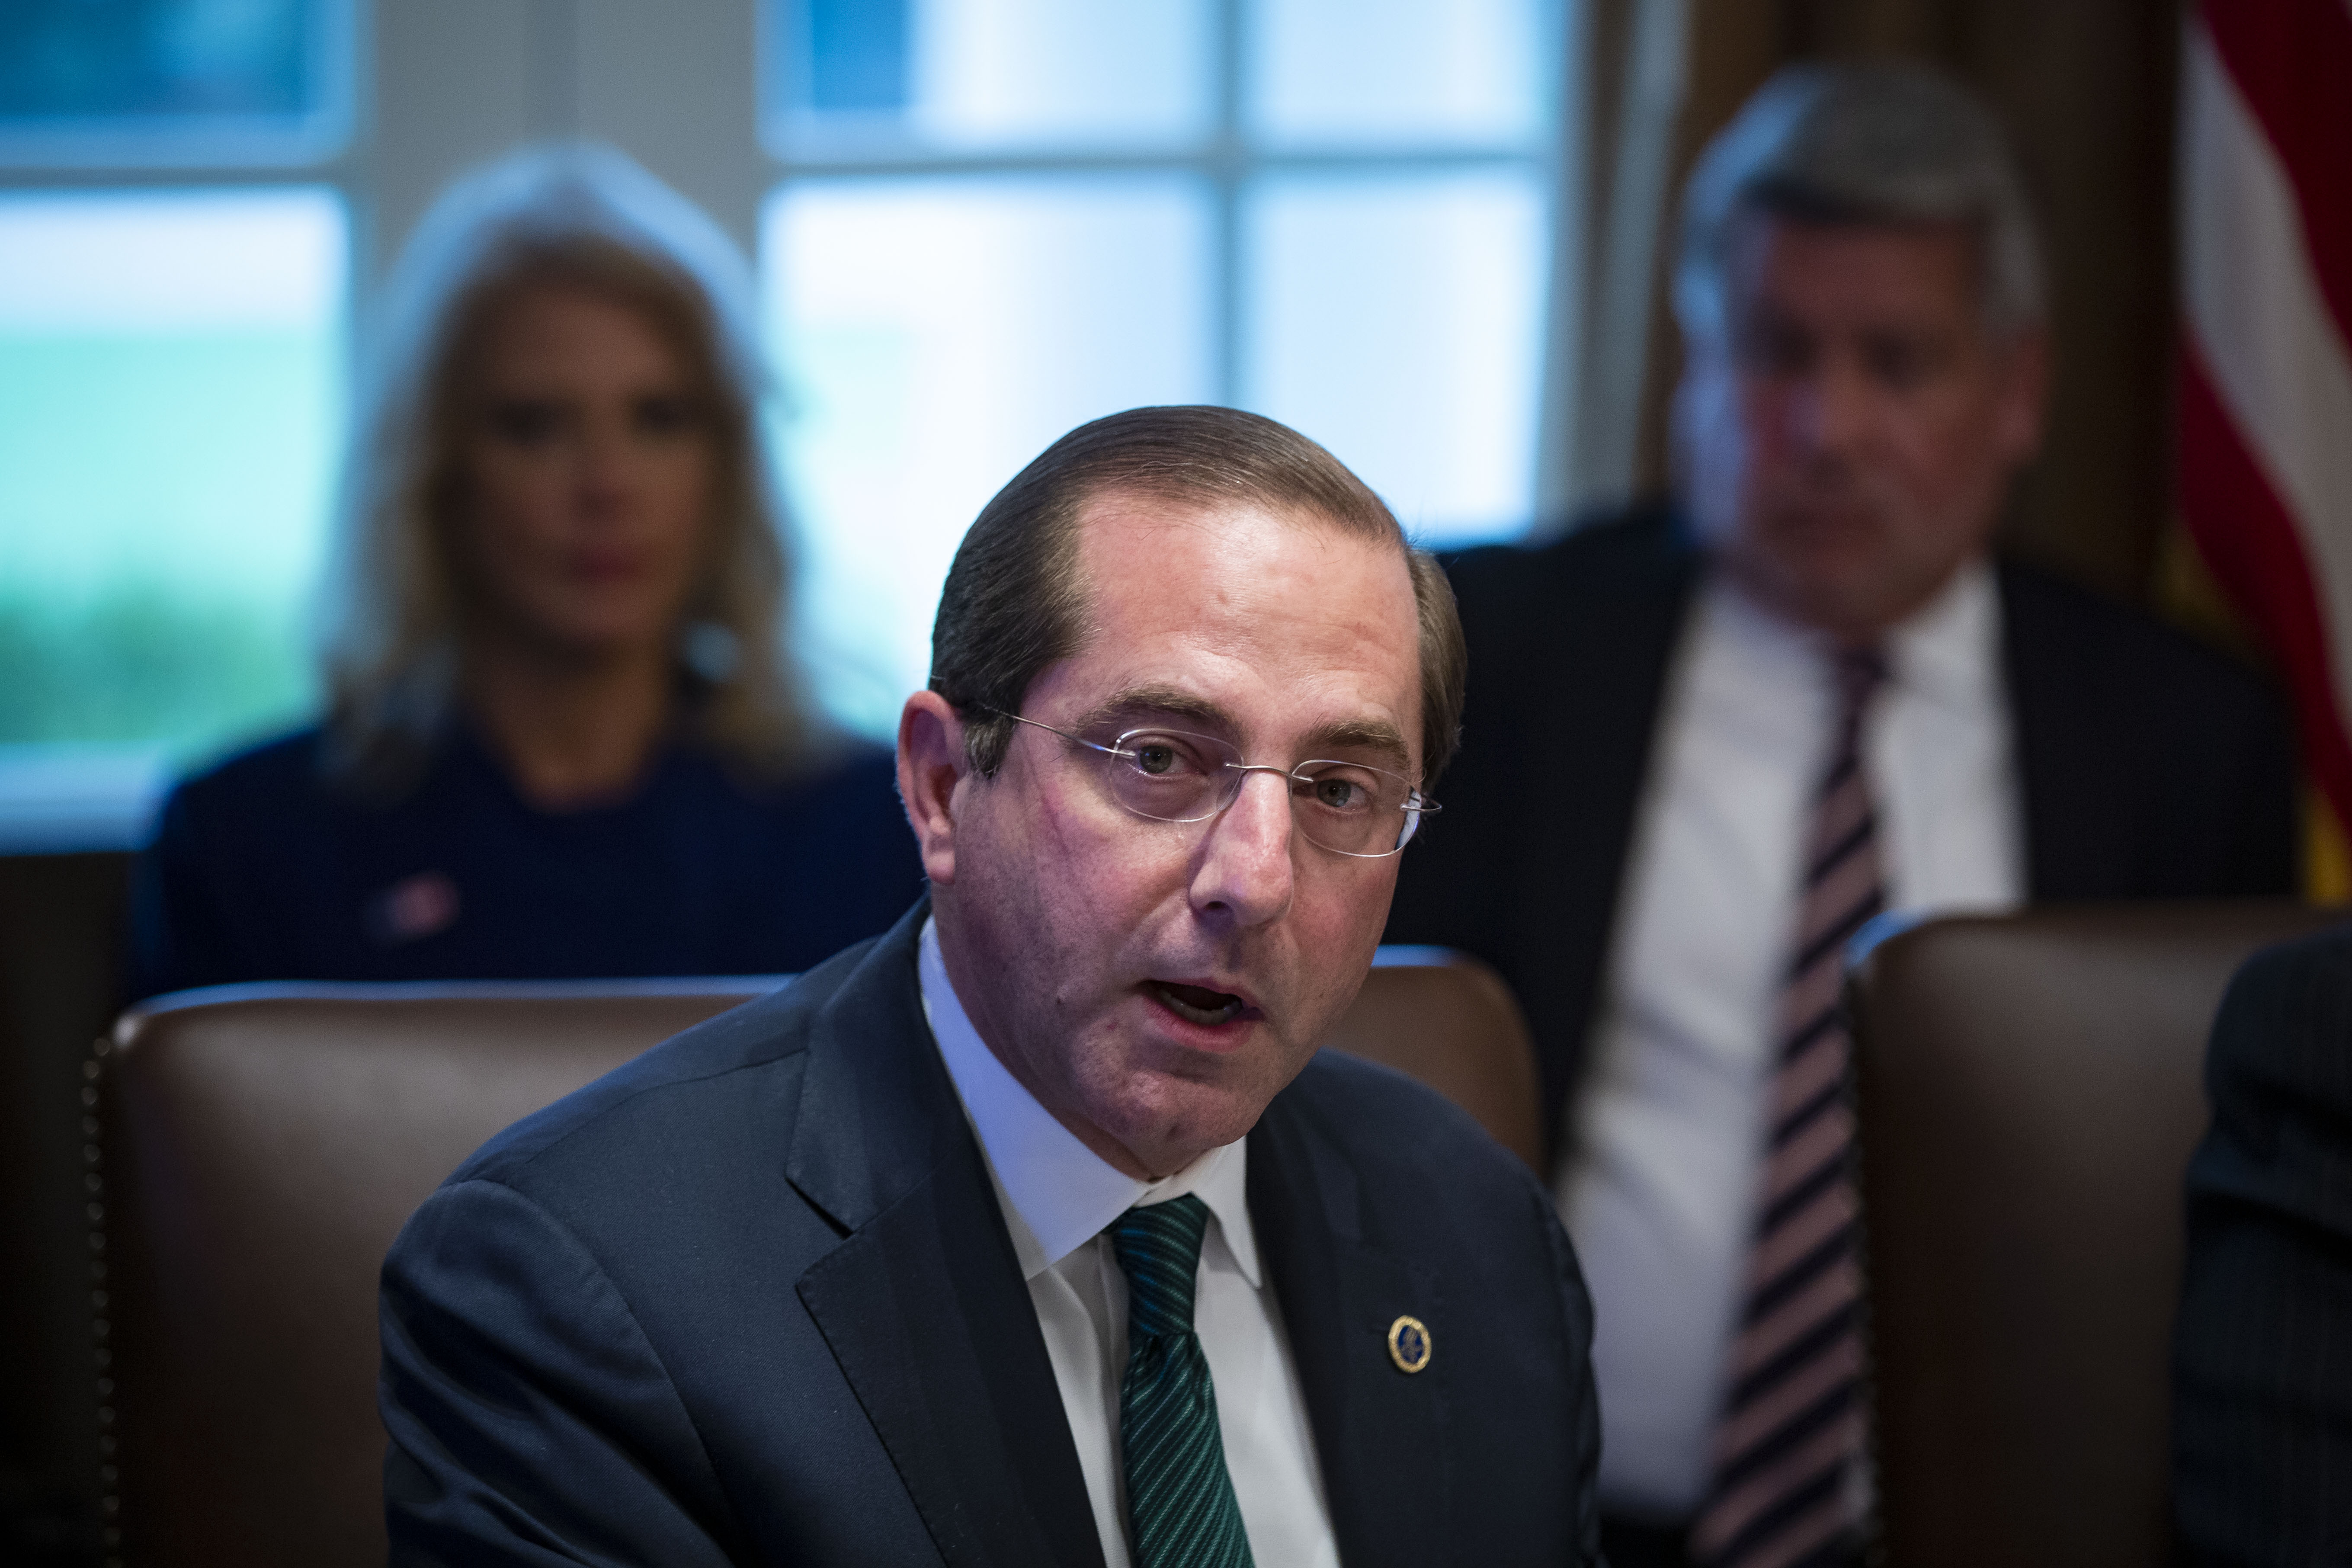 Hhs Secretary Alex Azar Tells Employers To Lower Healthcare Costs Employee Benefit News